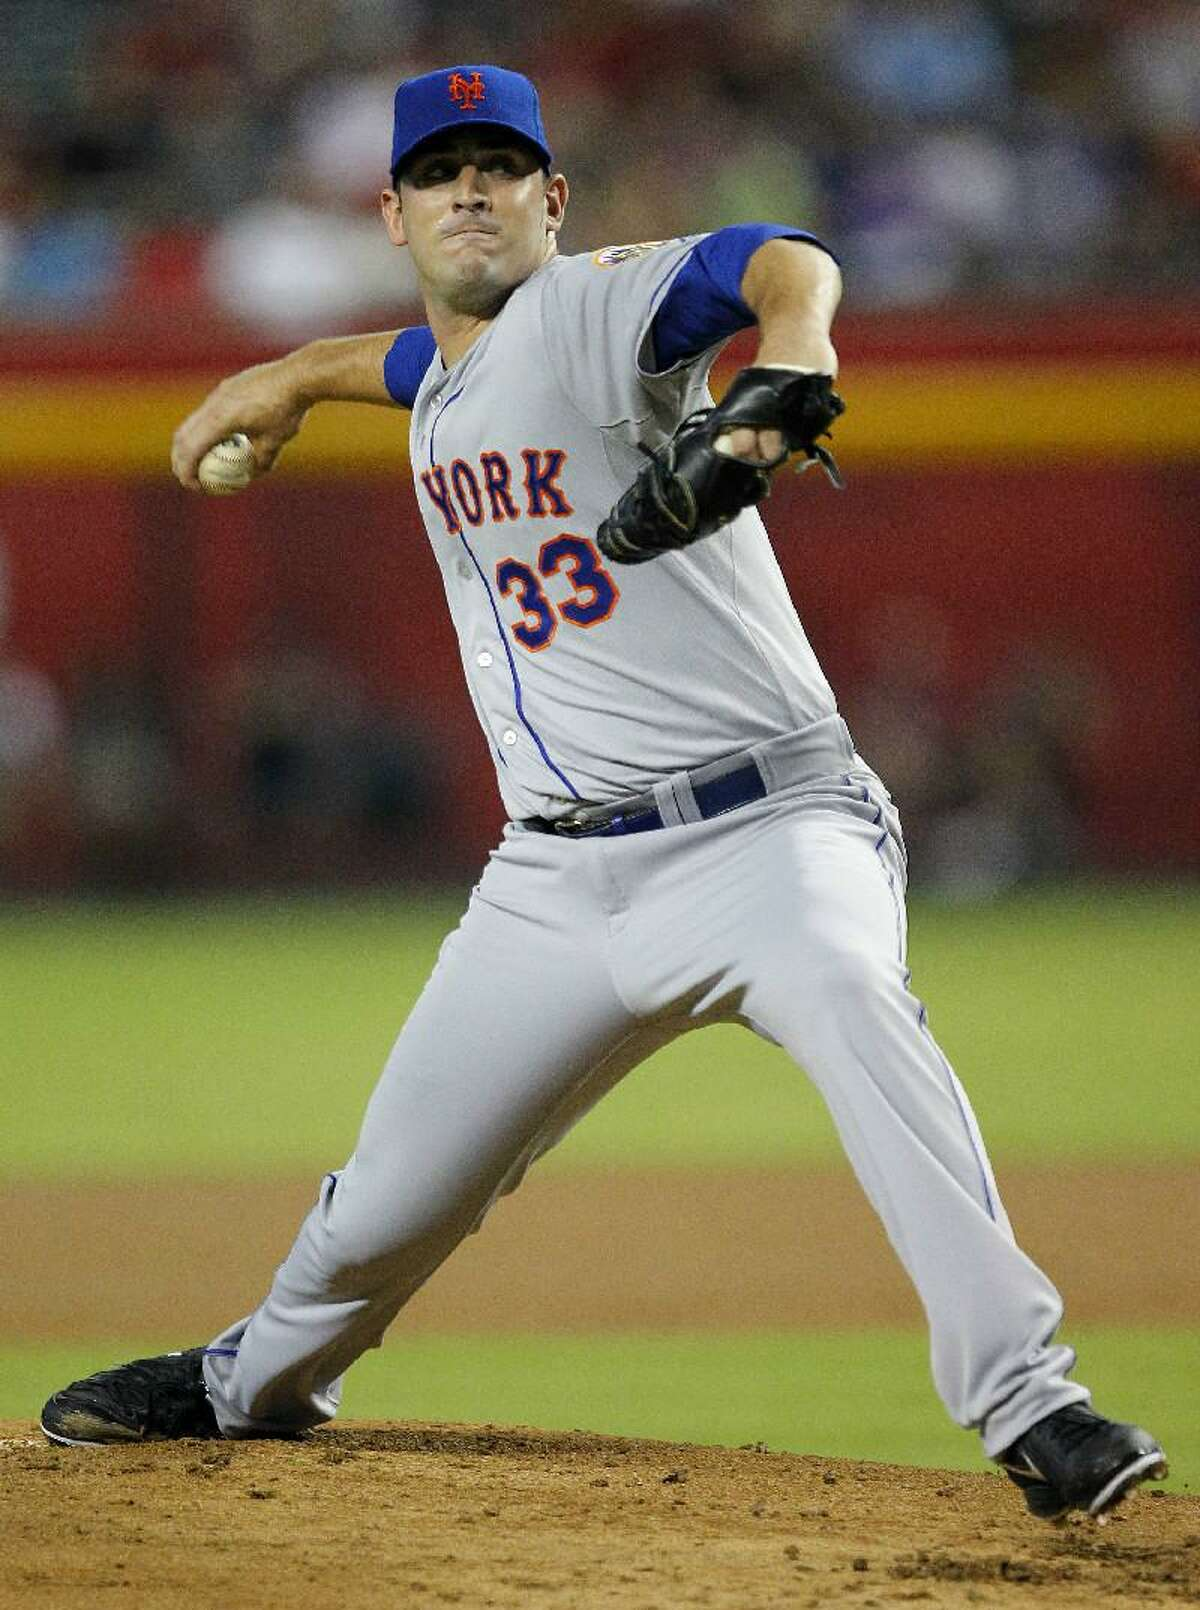 ASSOCIATED PRESS New York Mets pitcher Matt Harvey delivers a pitch in his major league debut against the Arizona Diamondbacks on Thursday in Phoenix. The Mets won 3-1. Harvey struck out 11 and picked up the win in his debut.